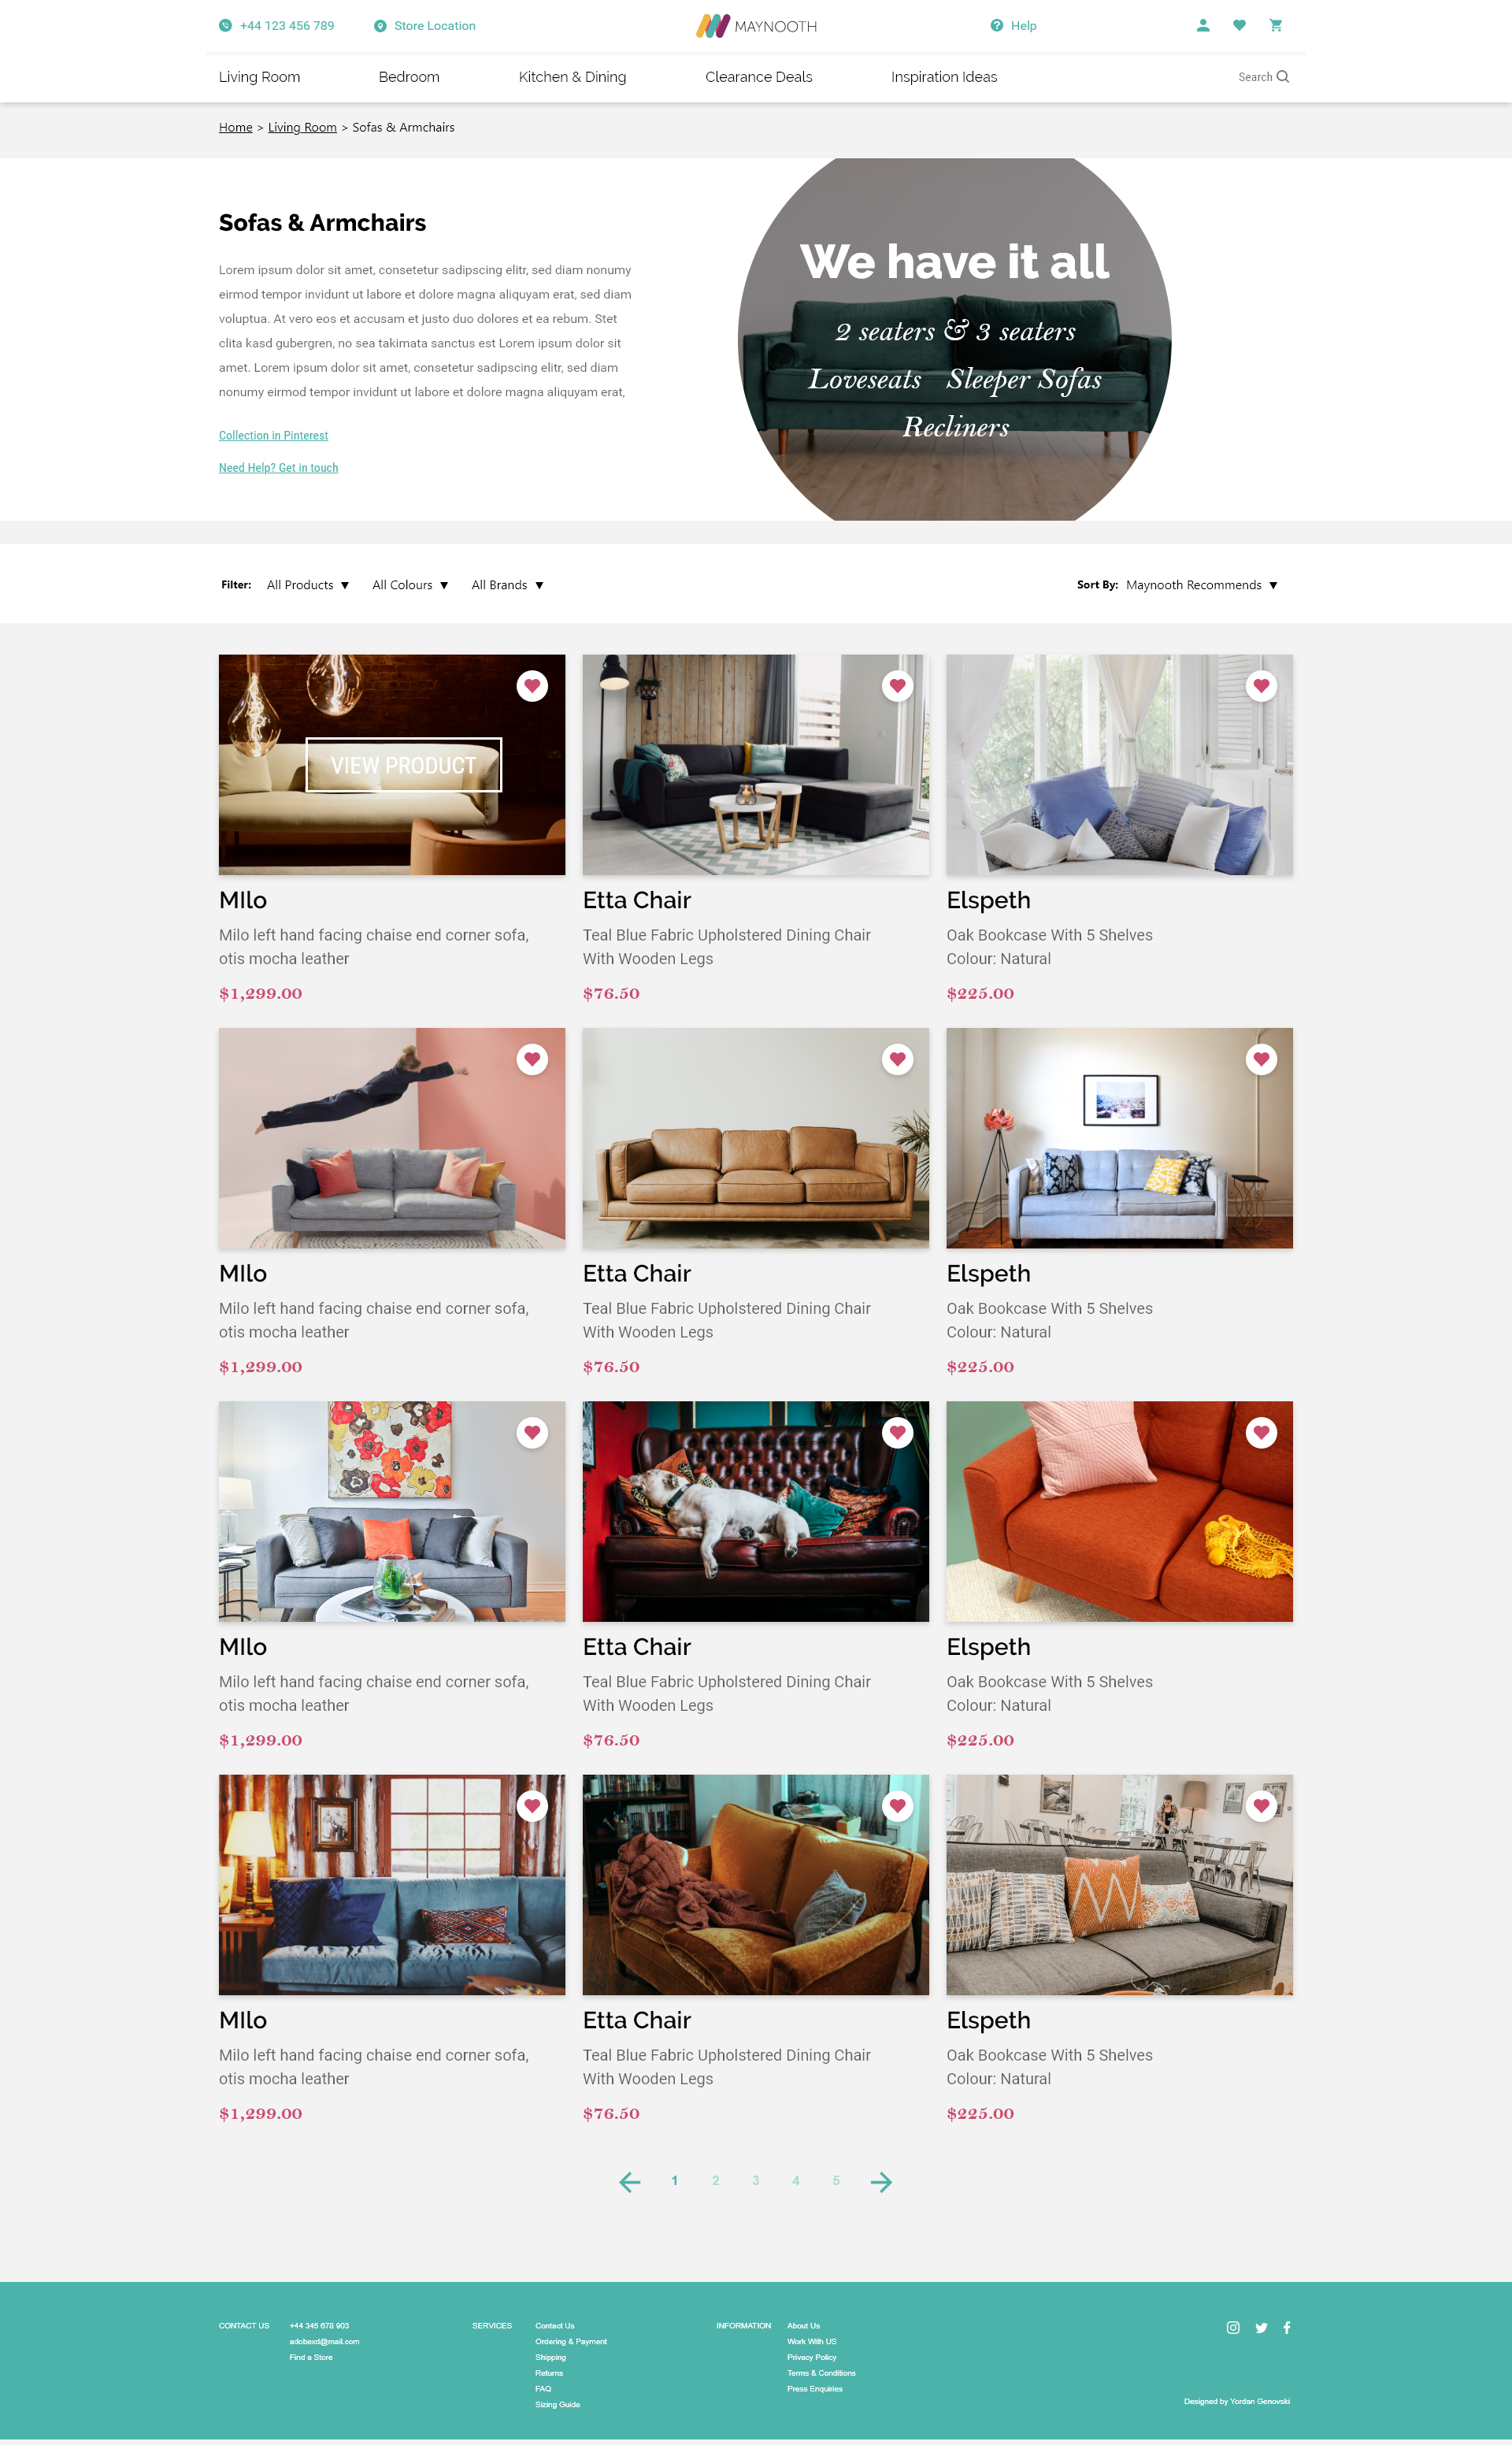 ui design subcategory page maynooth